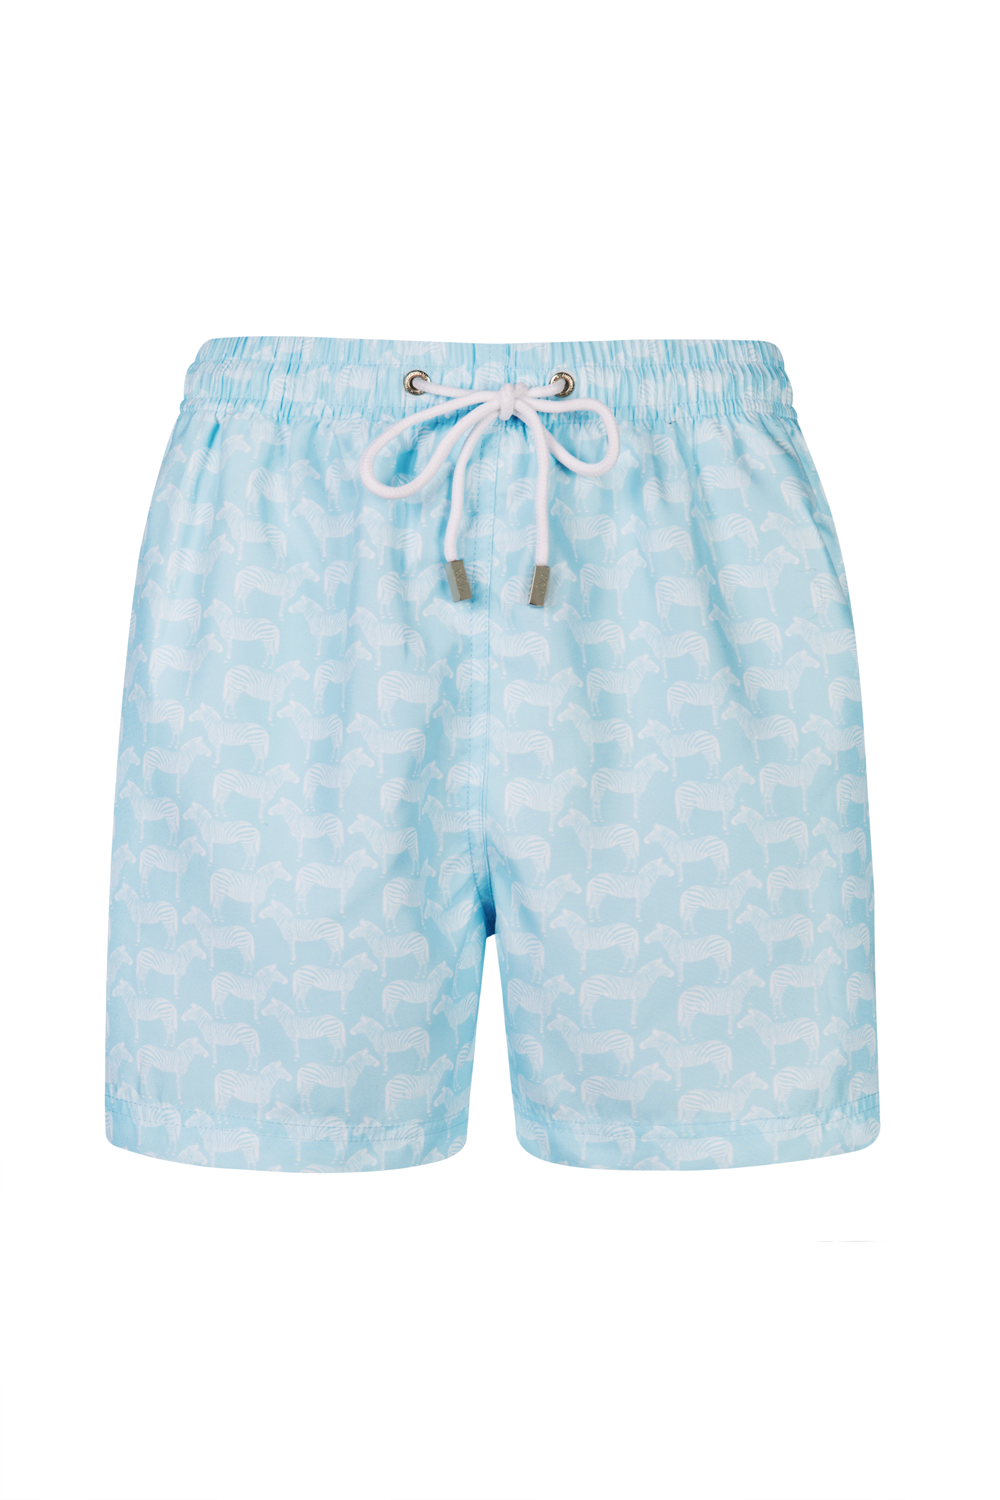 The  Pastel Blue Zebra Swim Short